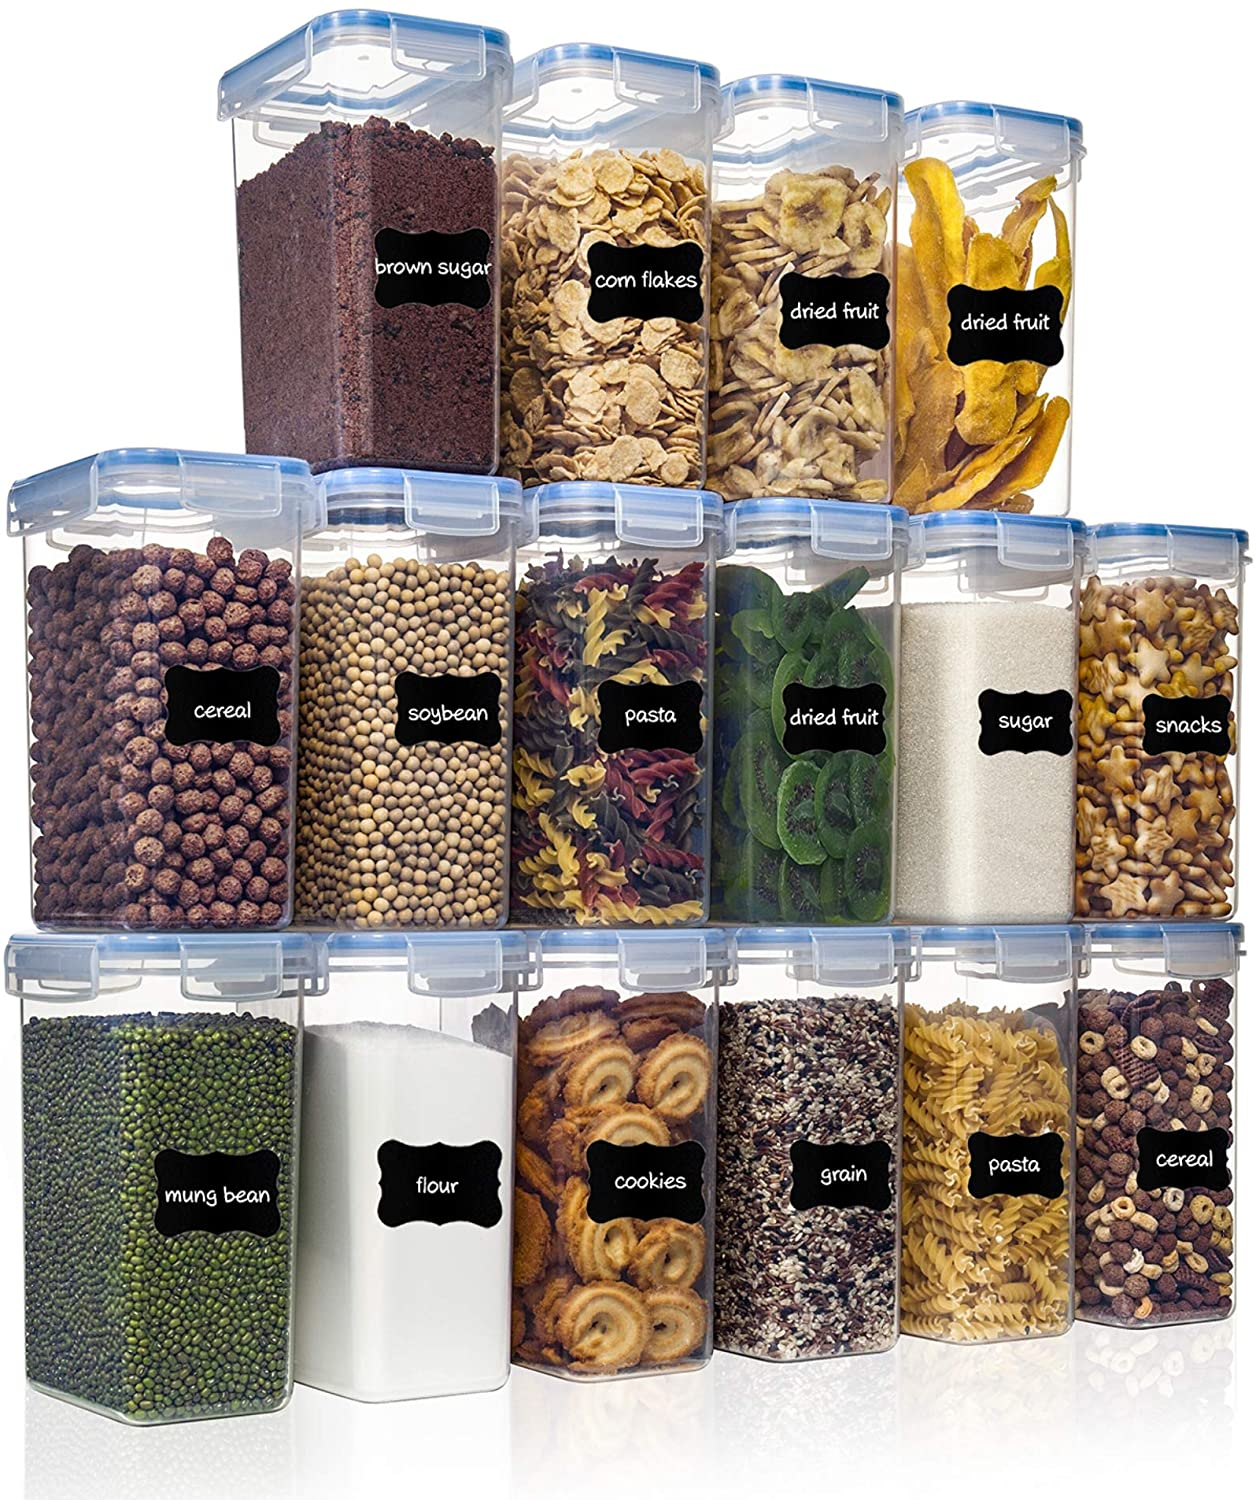 PantryStar Air Tight Flour Sugar and Cereal Containers (2L/1.8qt)